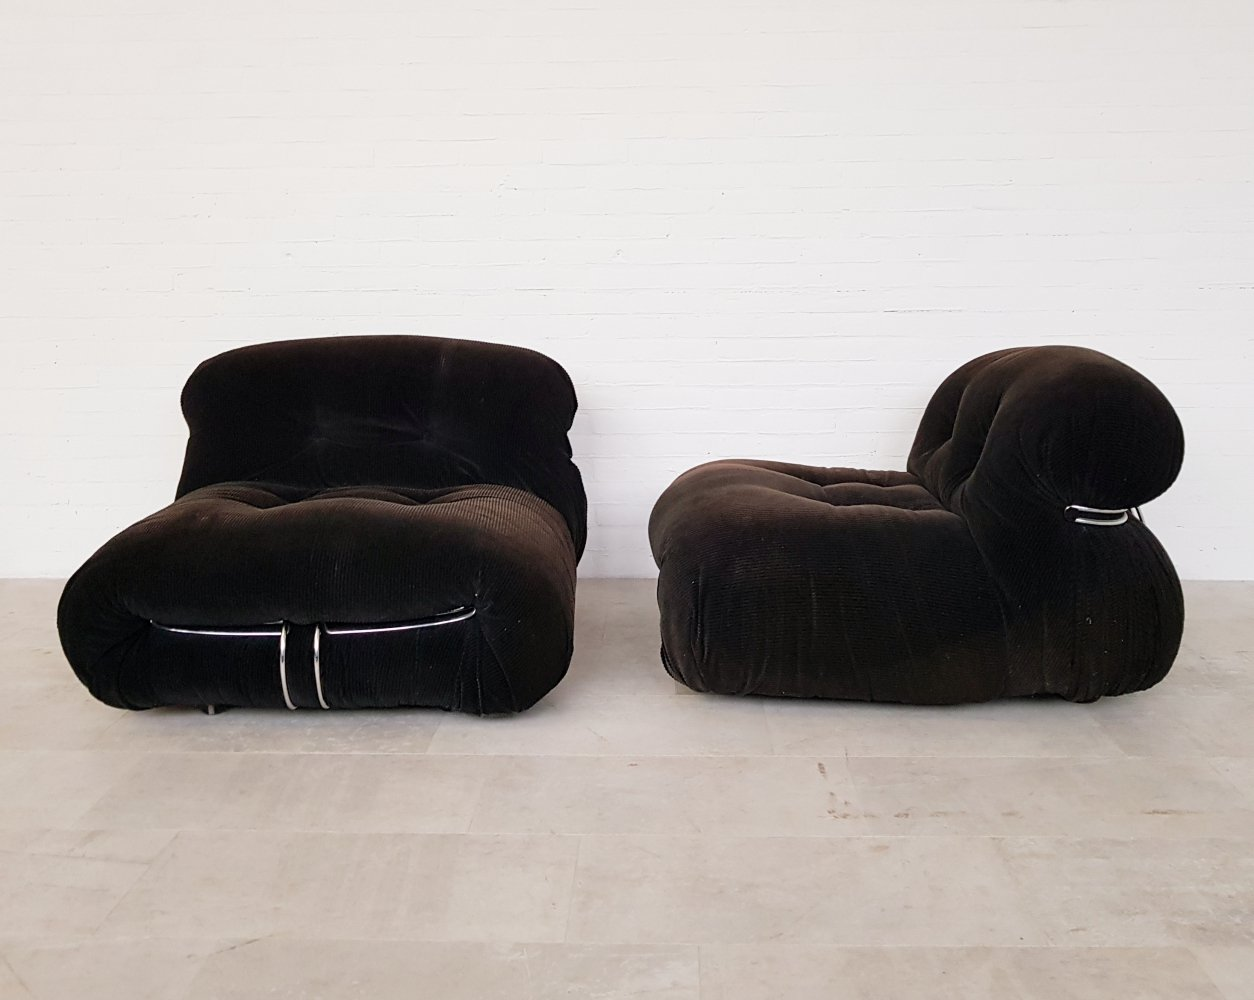 Soriana chairs by Afra & Tobia Scarpa for Cassina, 1970s